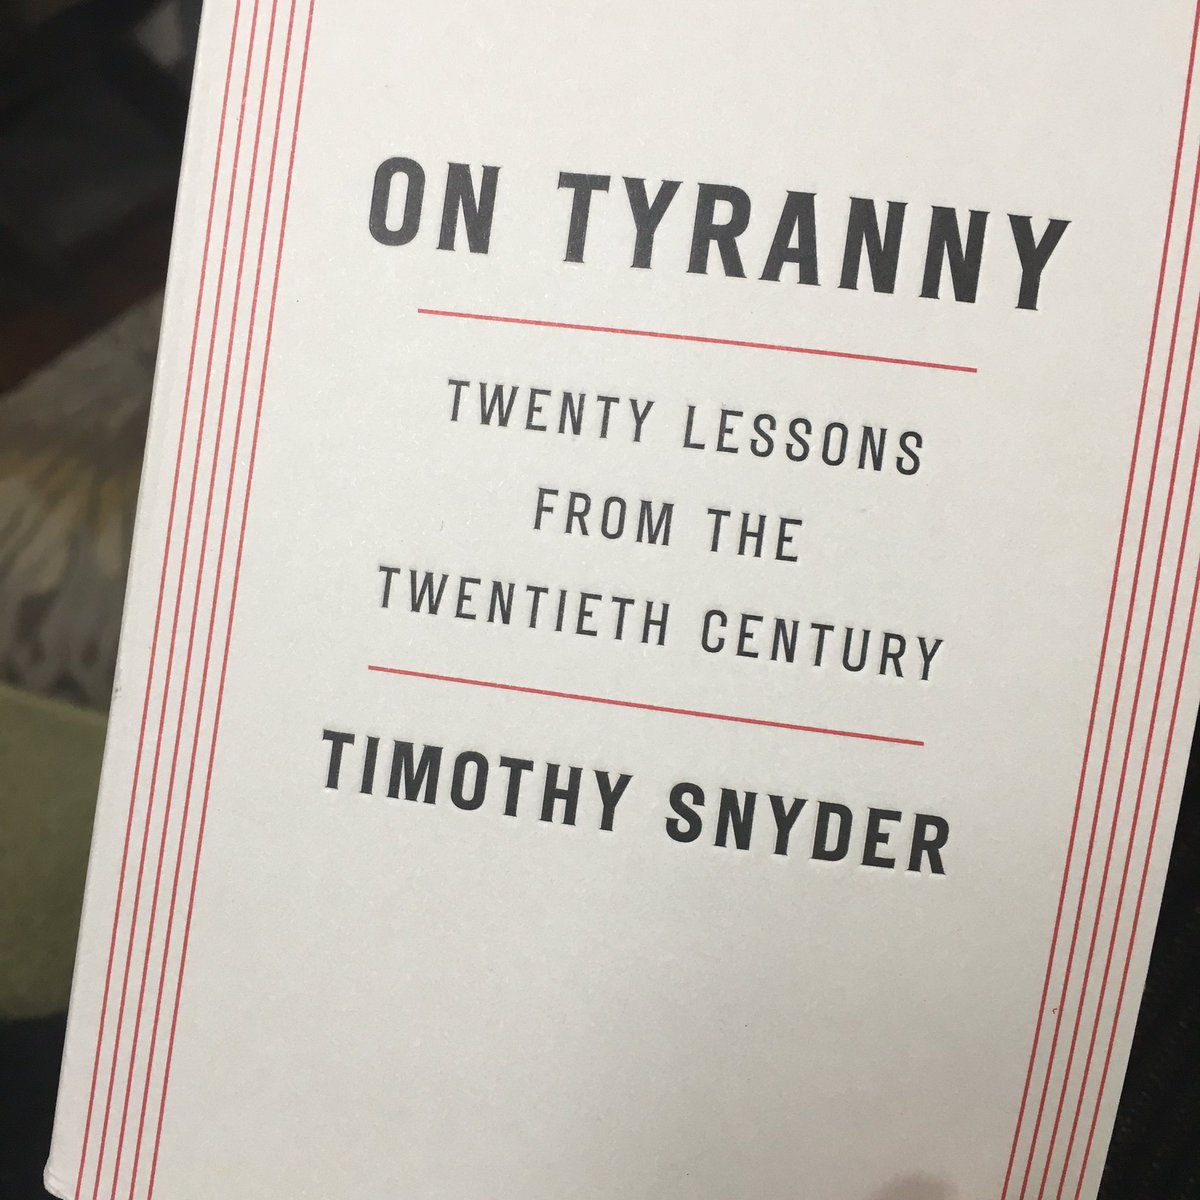 'History does not repeat, but it does instruct.' #timothysnyder